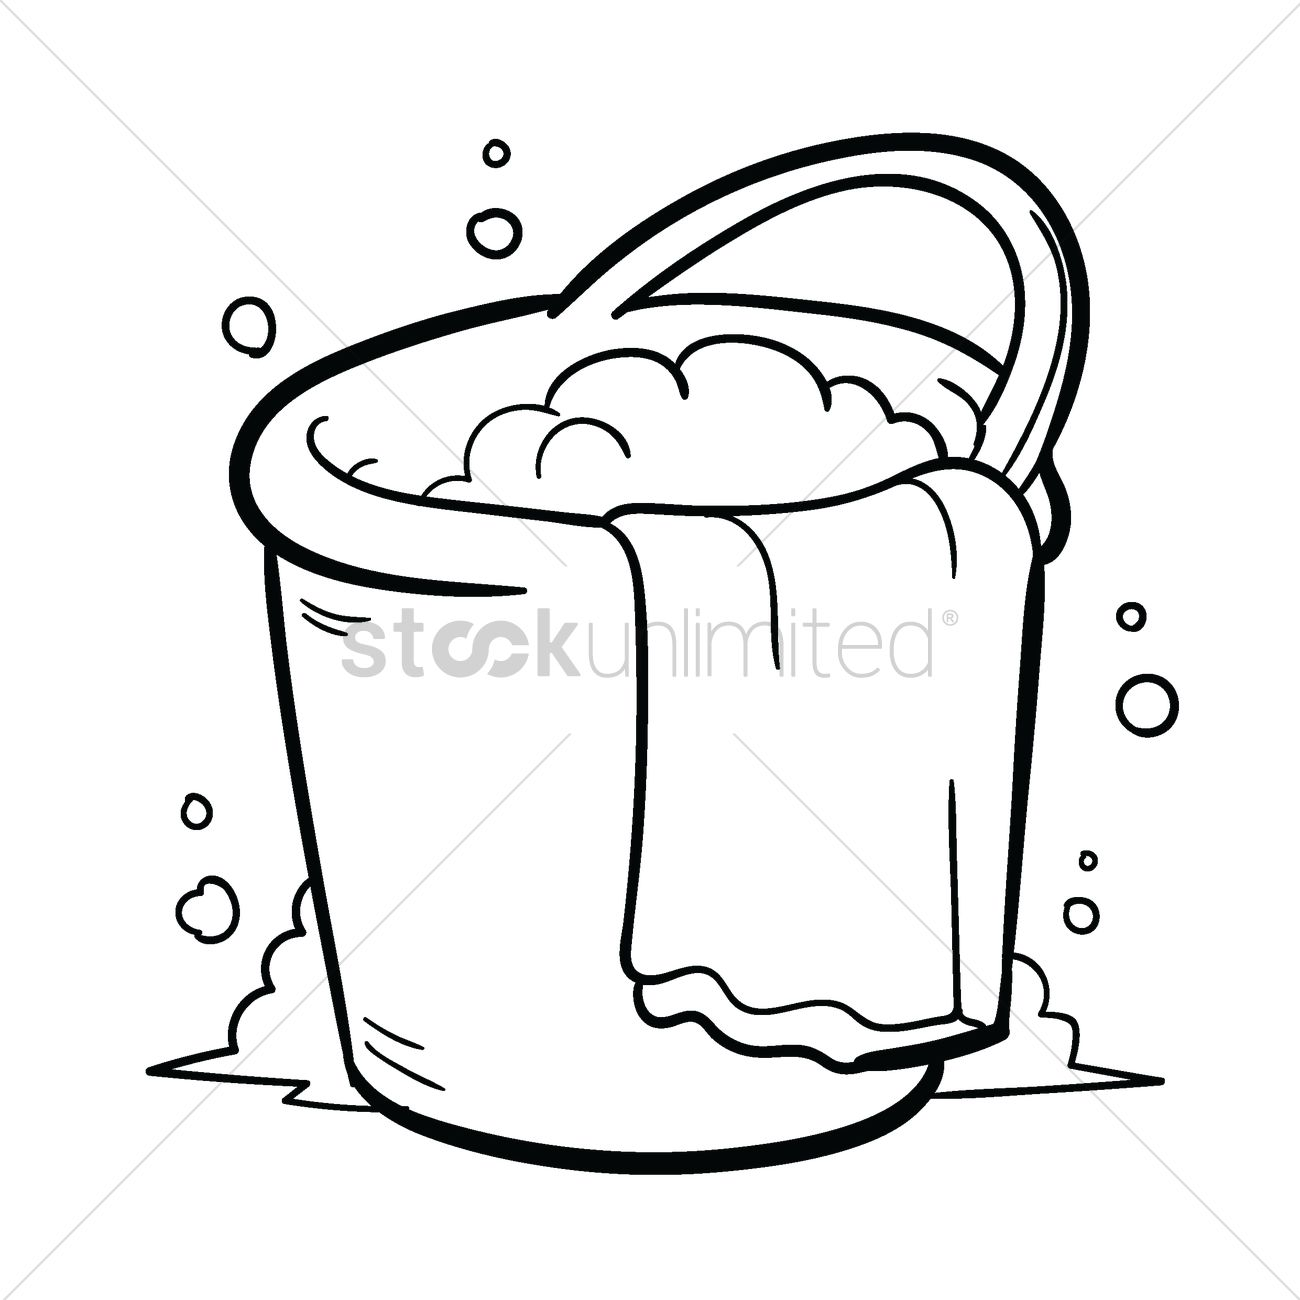 Bucket clipart draw. Drawing at getdrawings com